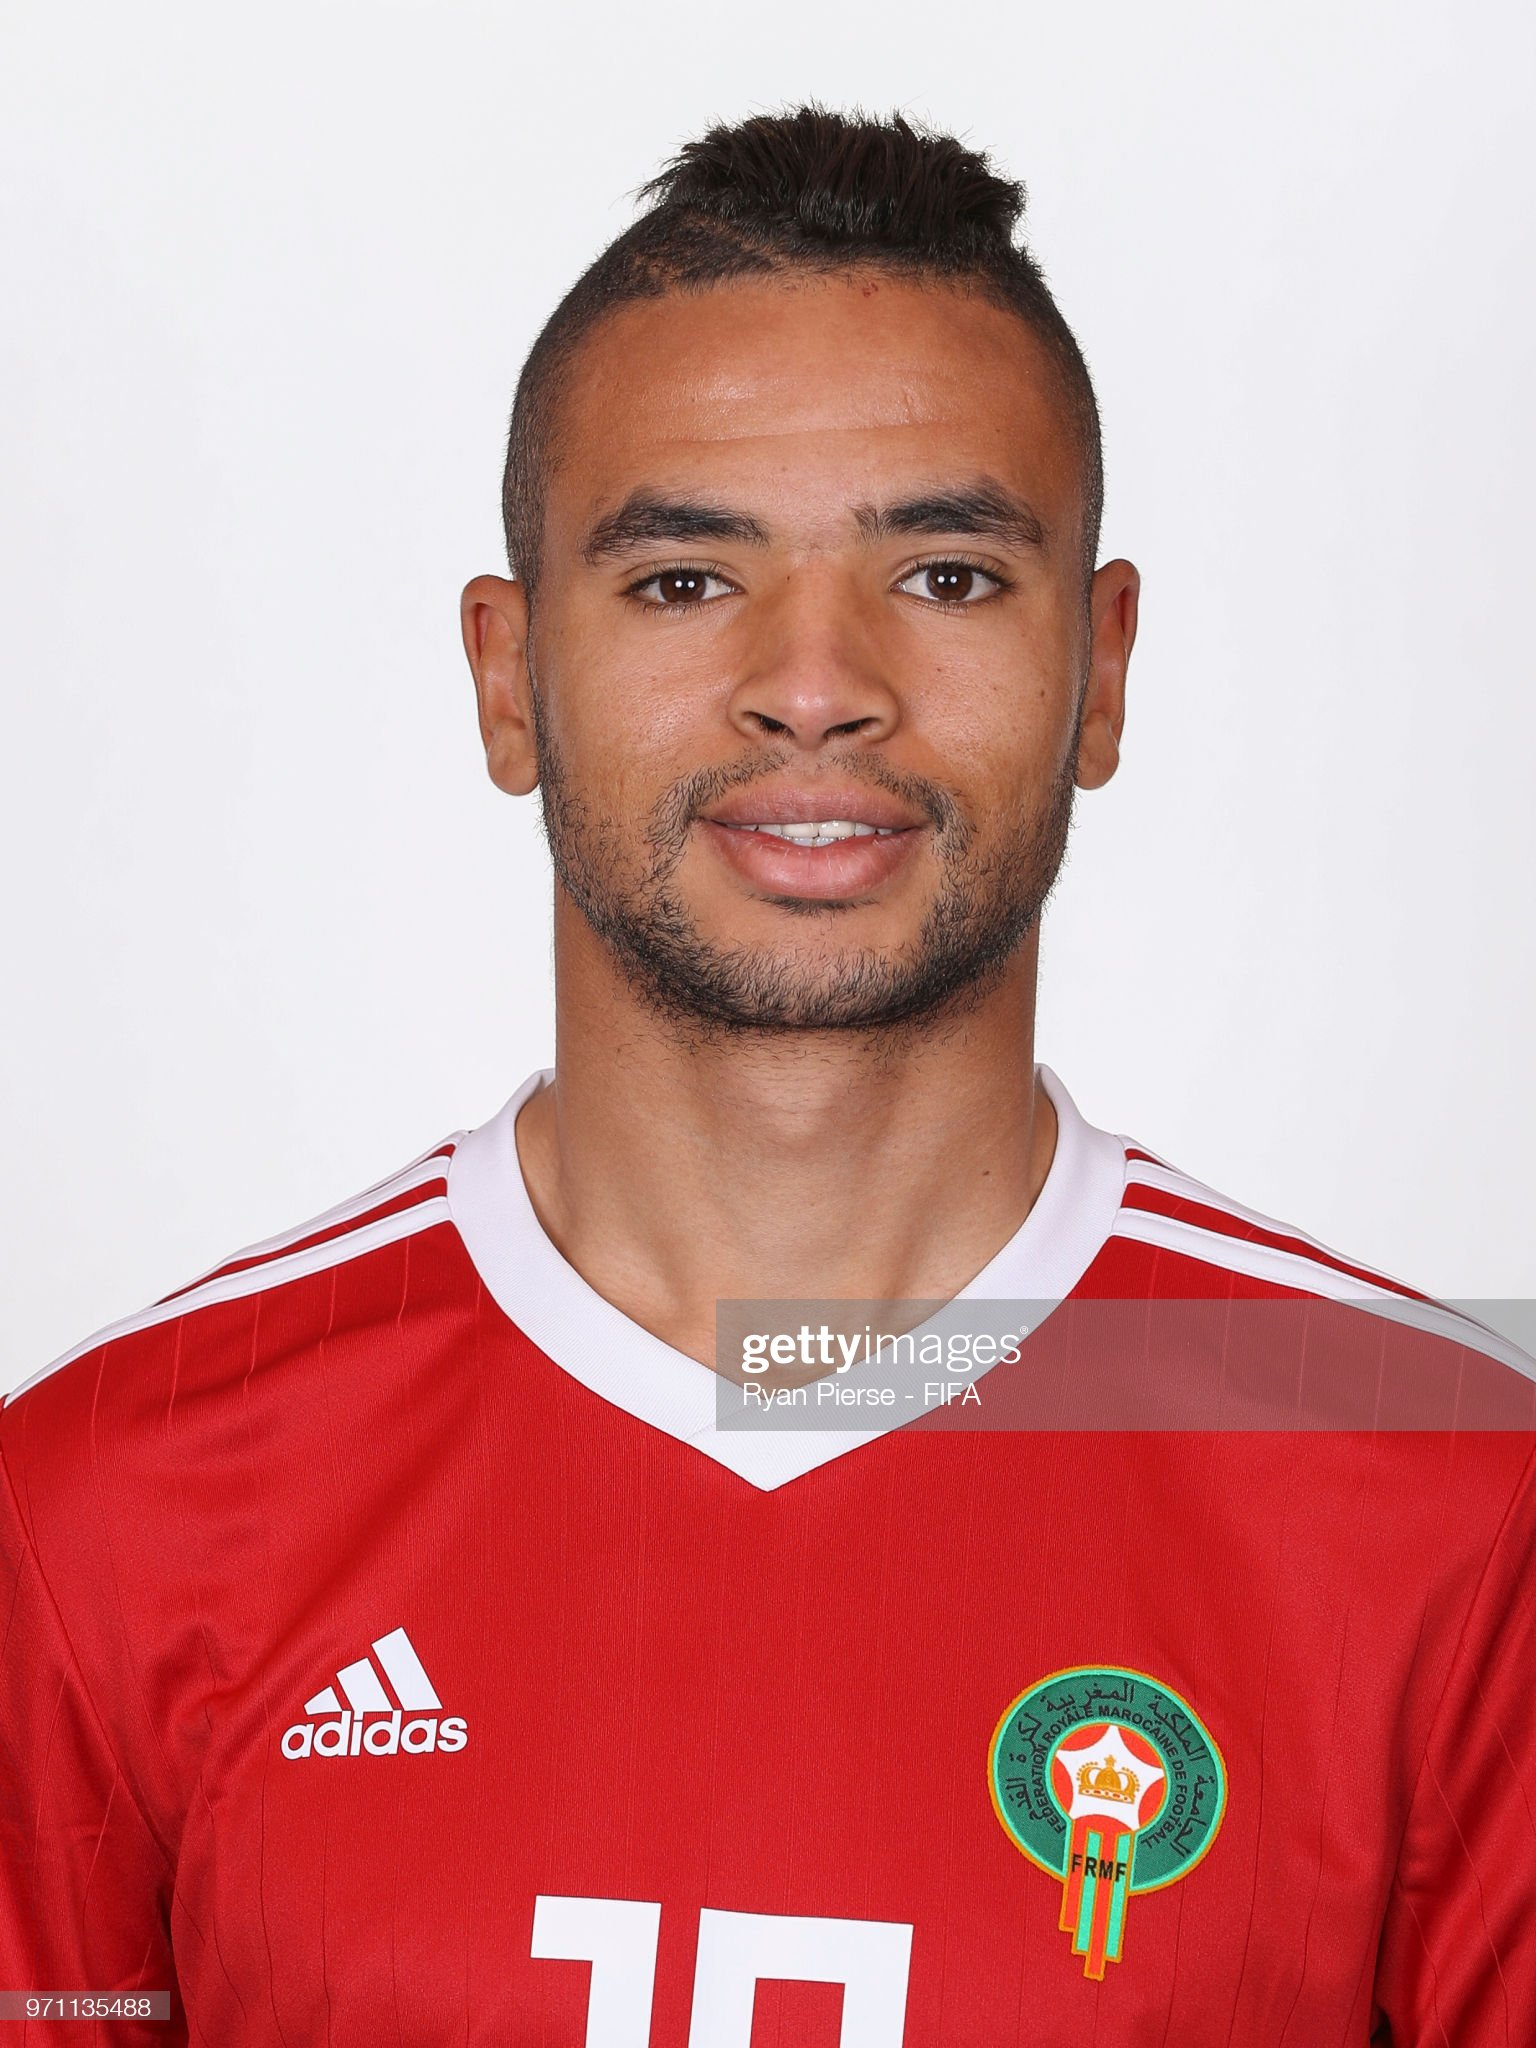 Norteafricanos Yousseff-ennesyri-of-morocco-poses-during-the-official-fifa-world-cup-picture-id971135488?s=2048x2048